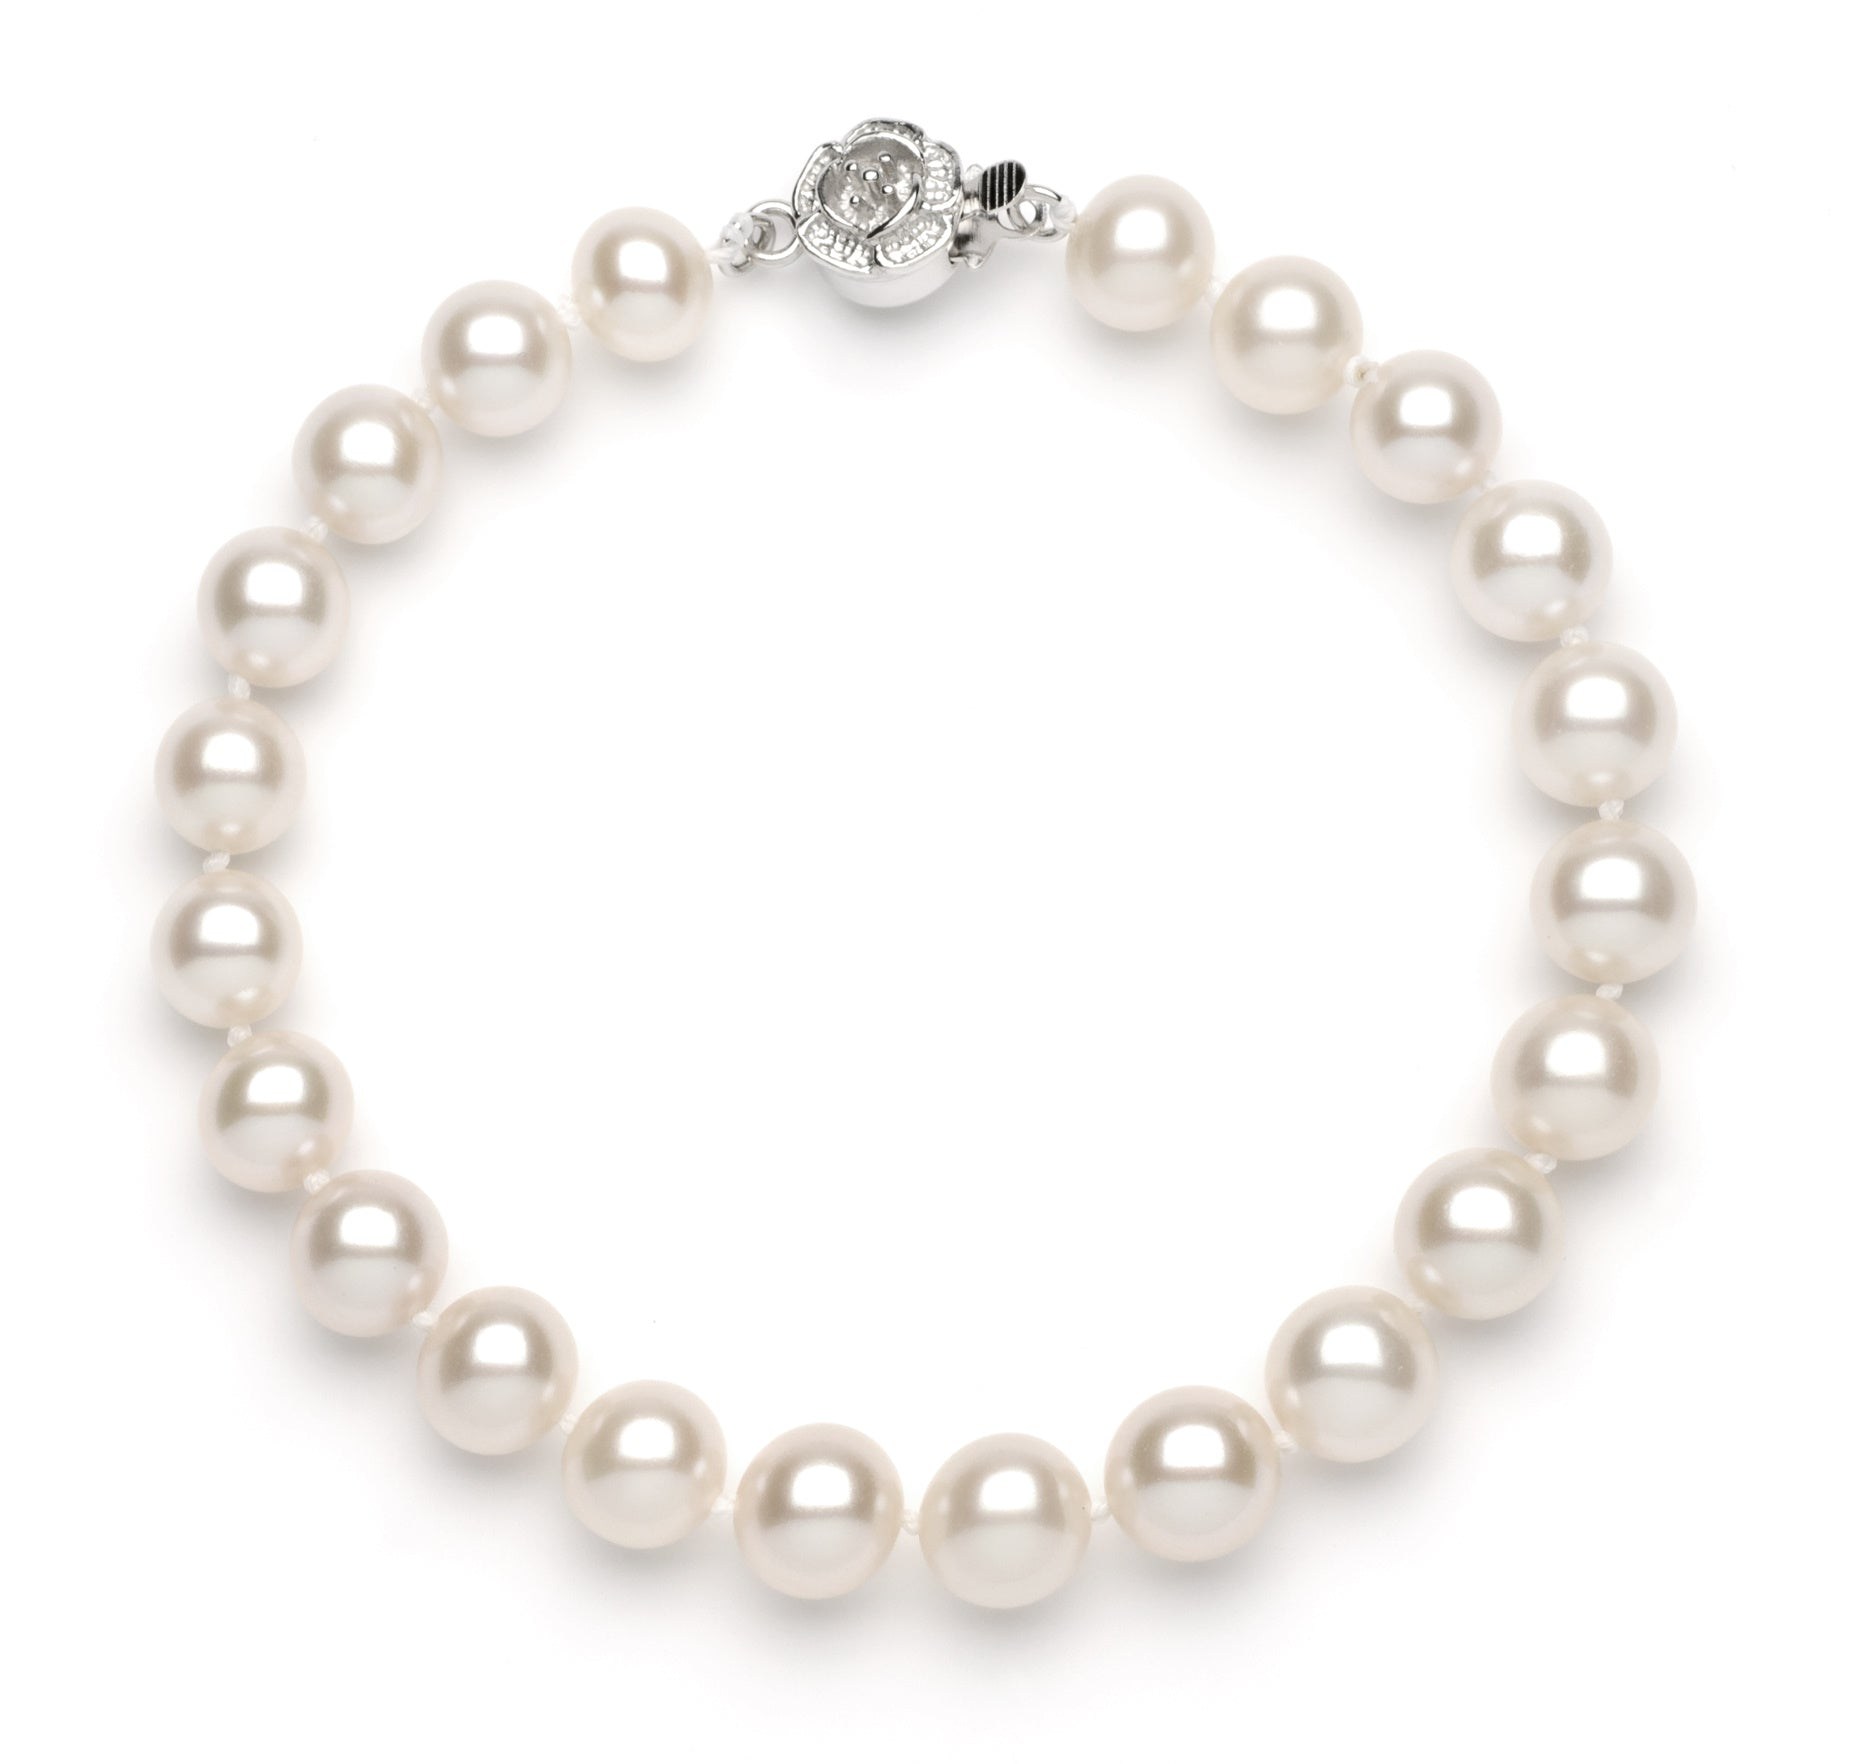 Full Set of 8.0-9.0 mm White Freshwater Pearls